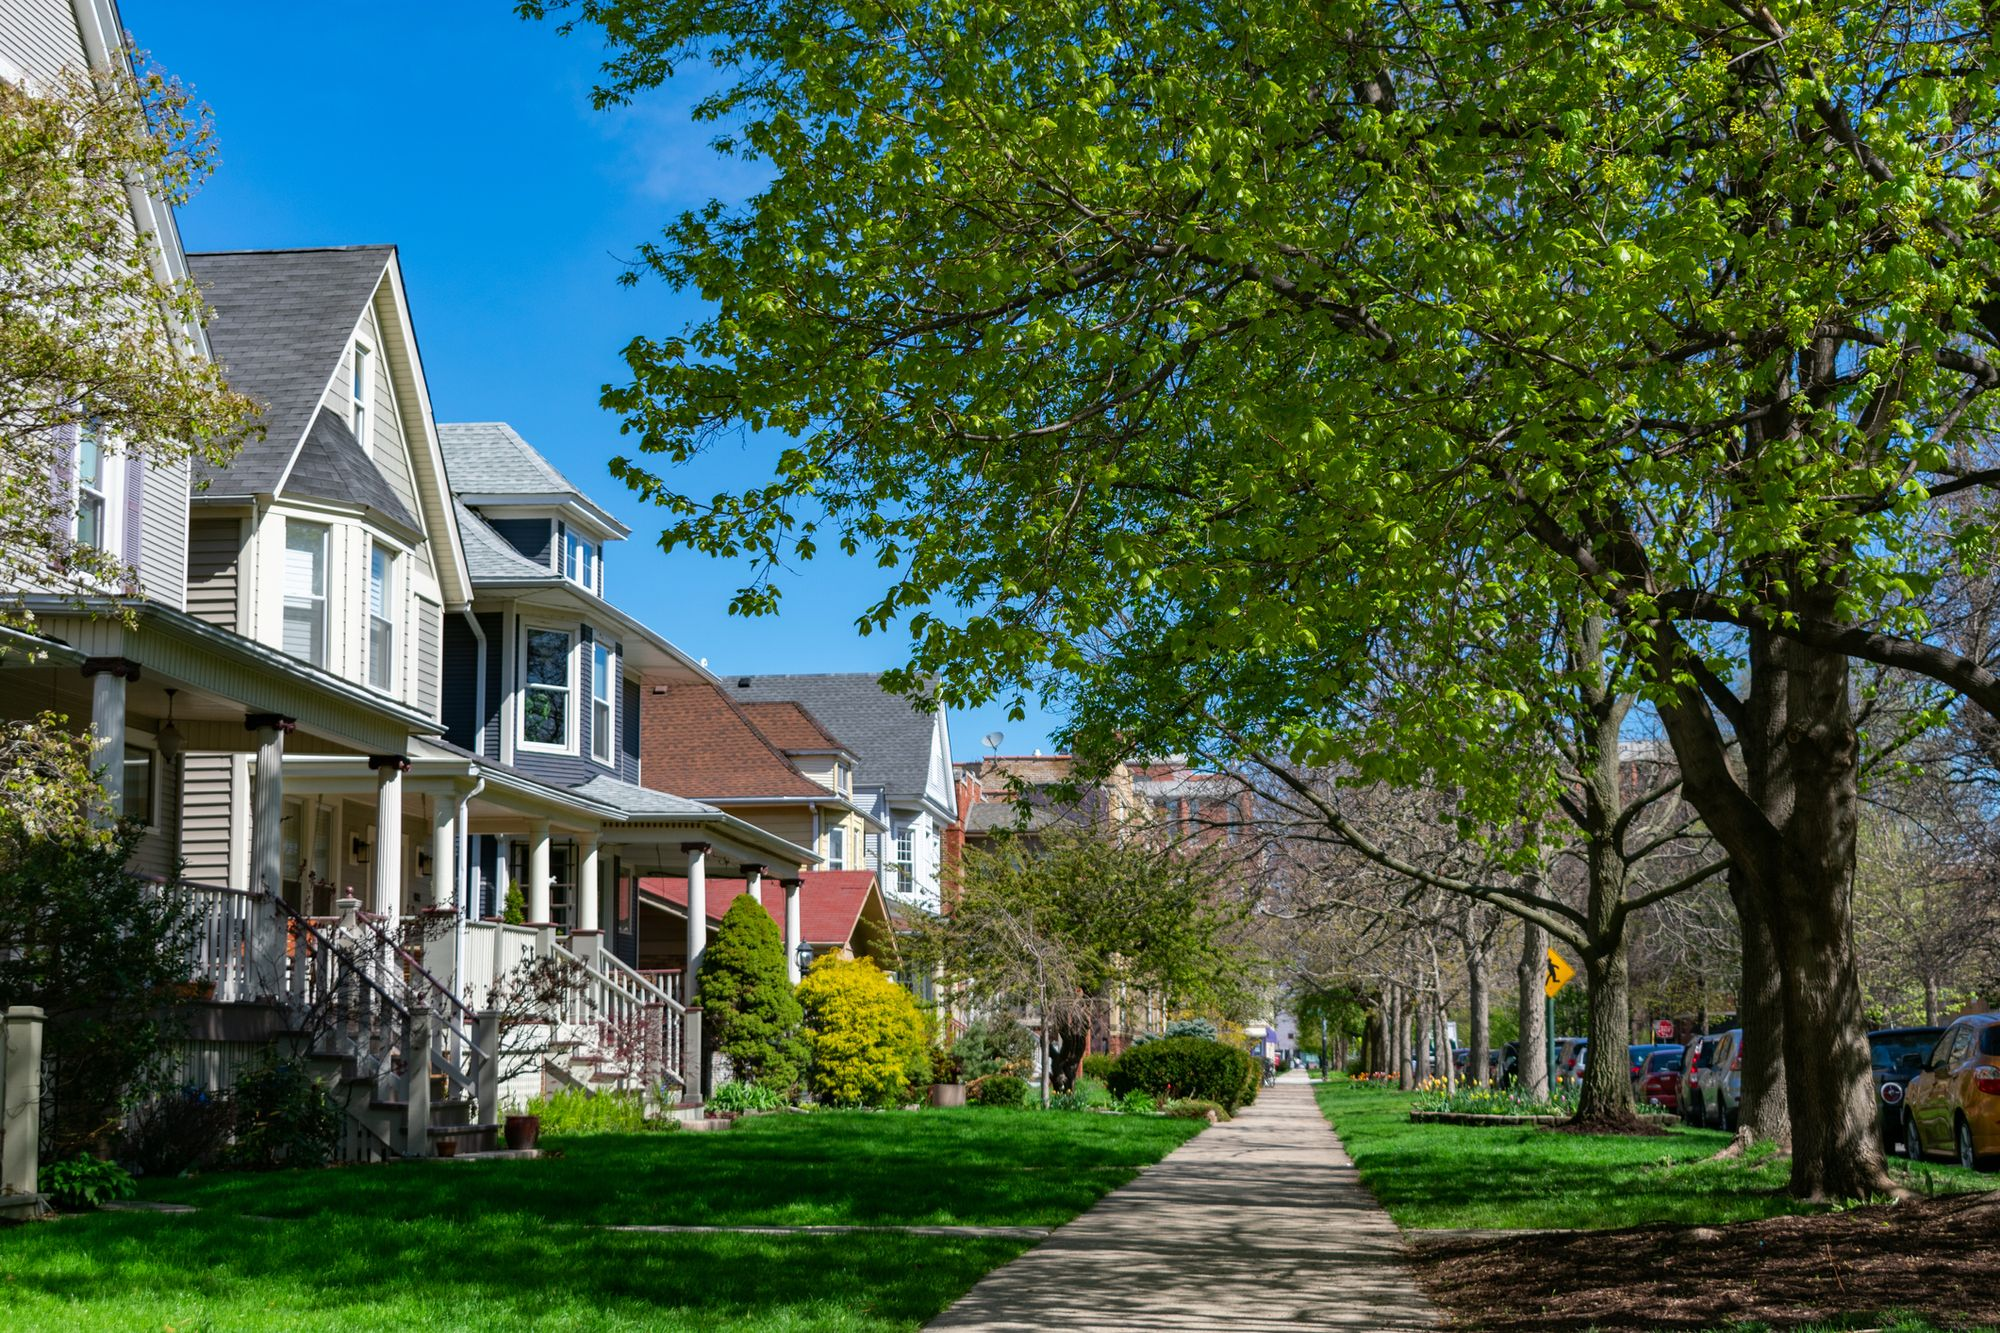 Advantages of Buying in an Older Neighborhood